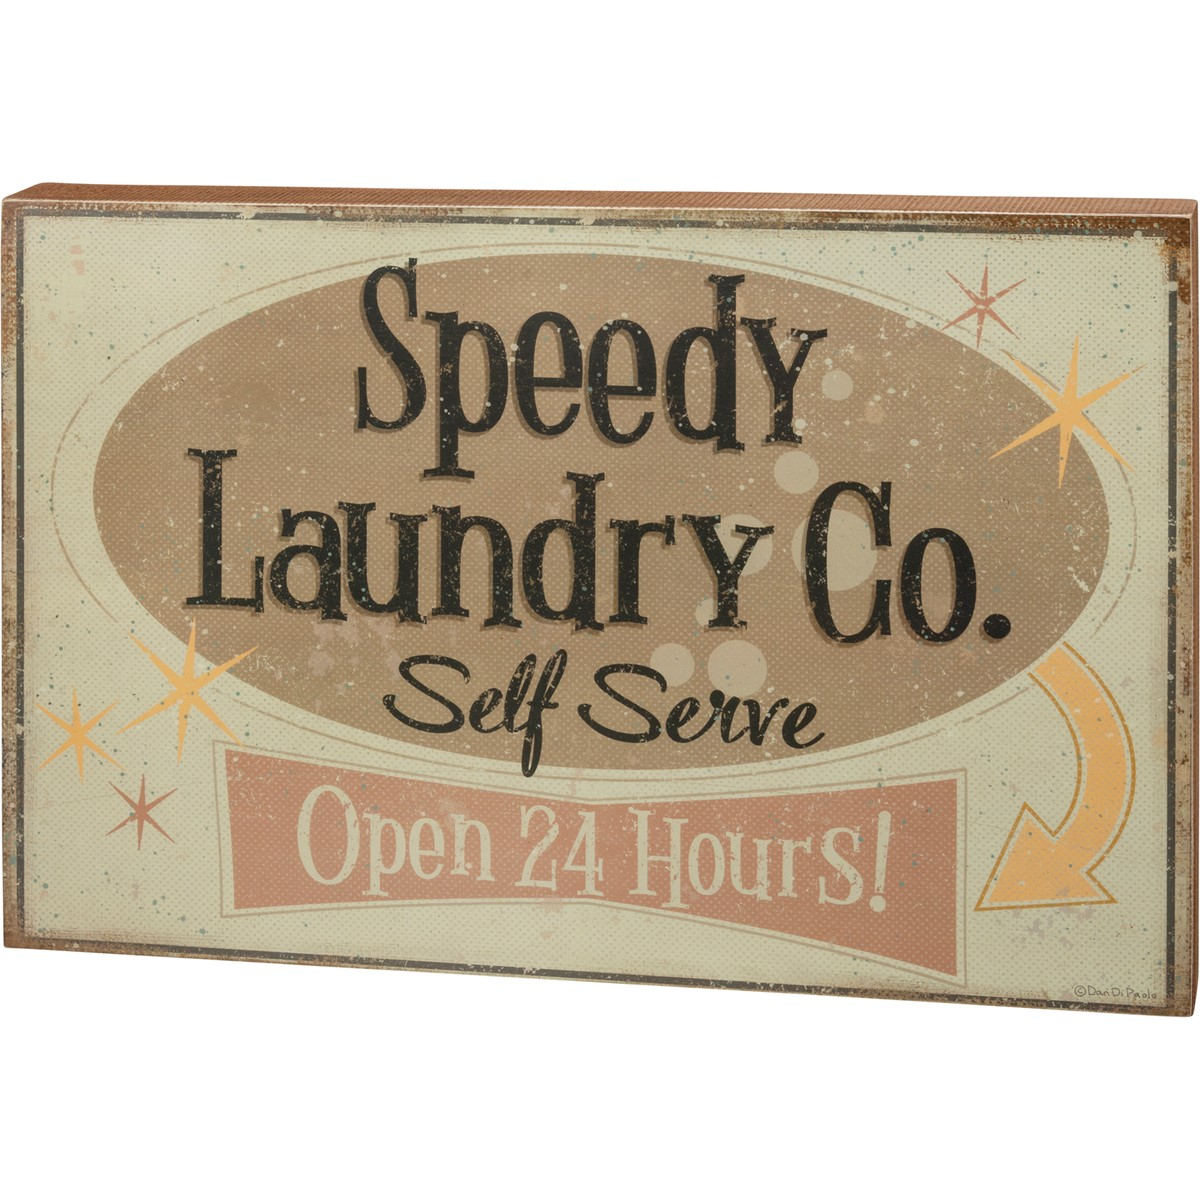 "Box Sign - Speedy Laundry Co. Self Serve - 24"" x 16.25"" x 1.75"" - Wood, Paper"